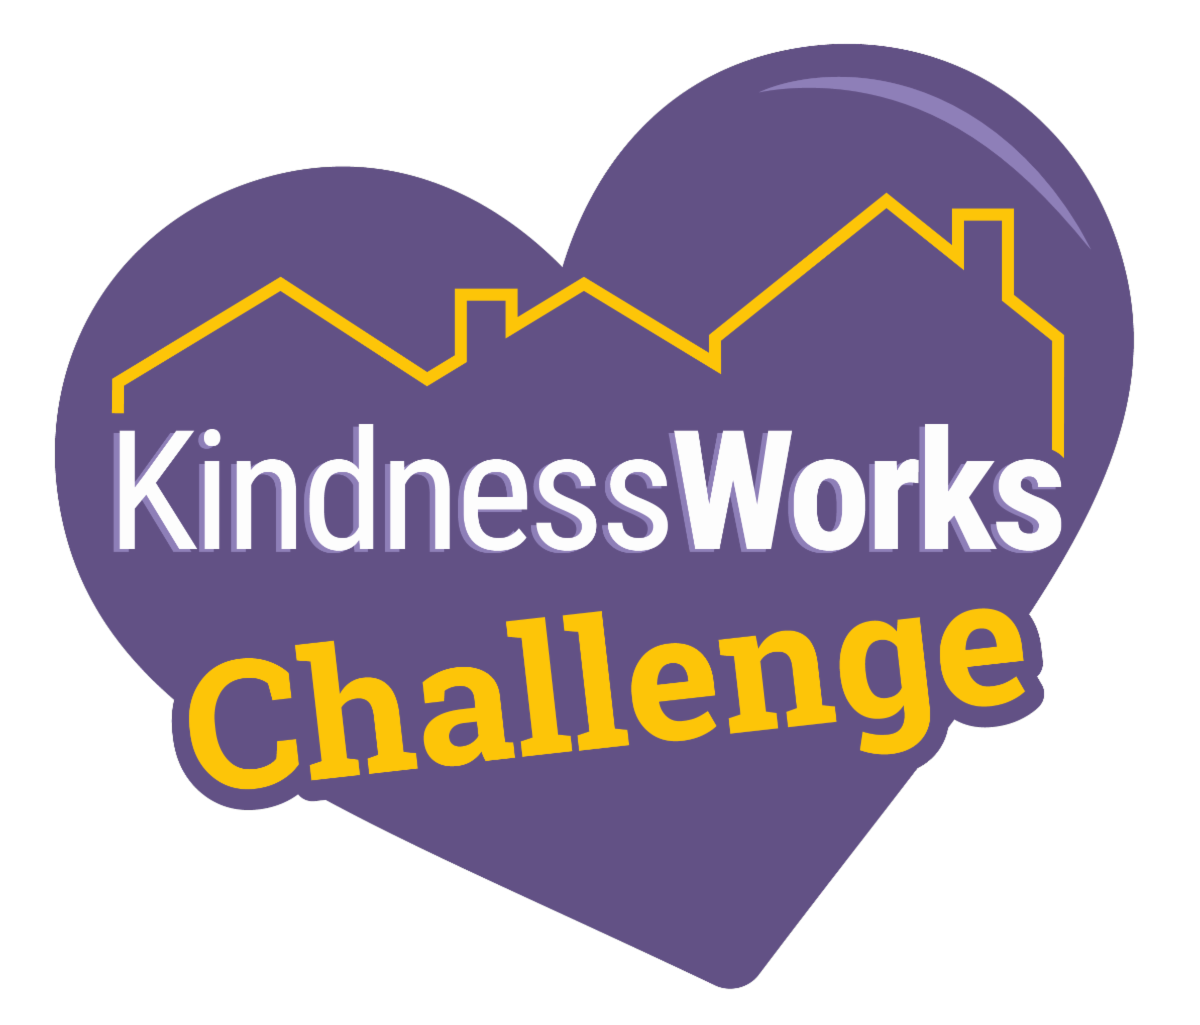 KindnessWorks Challenge